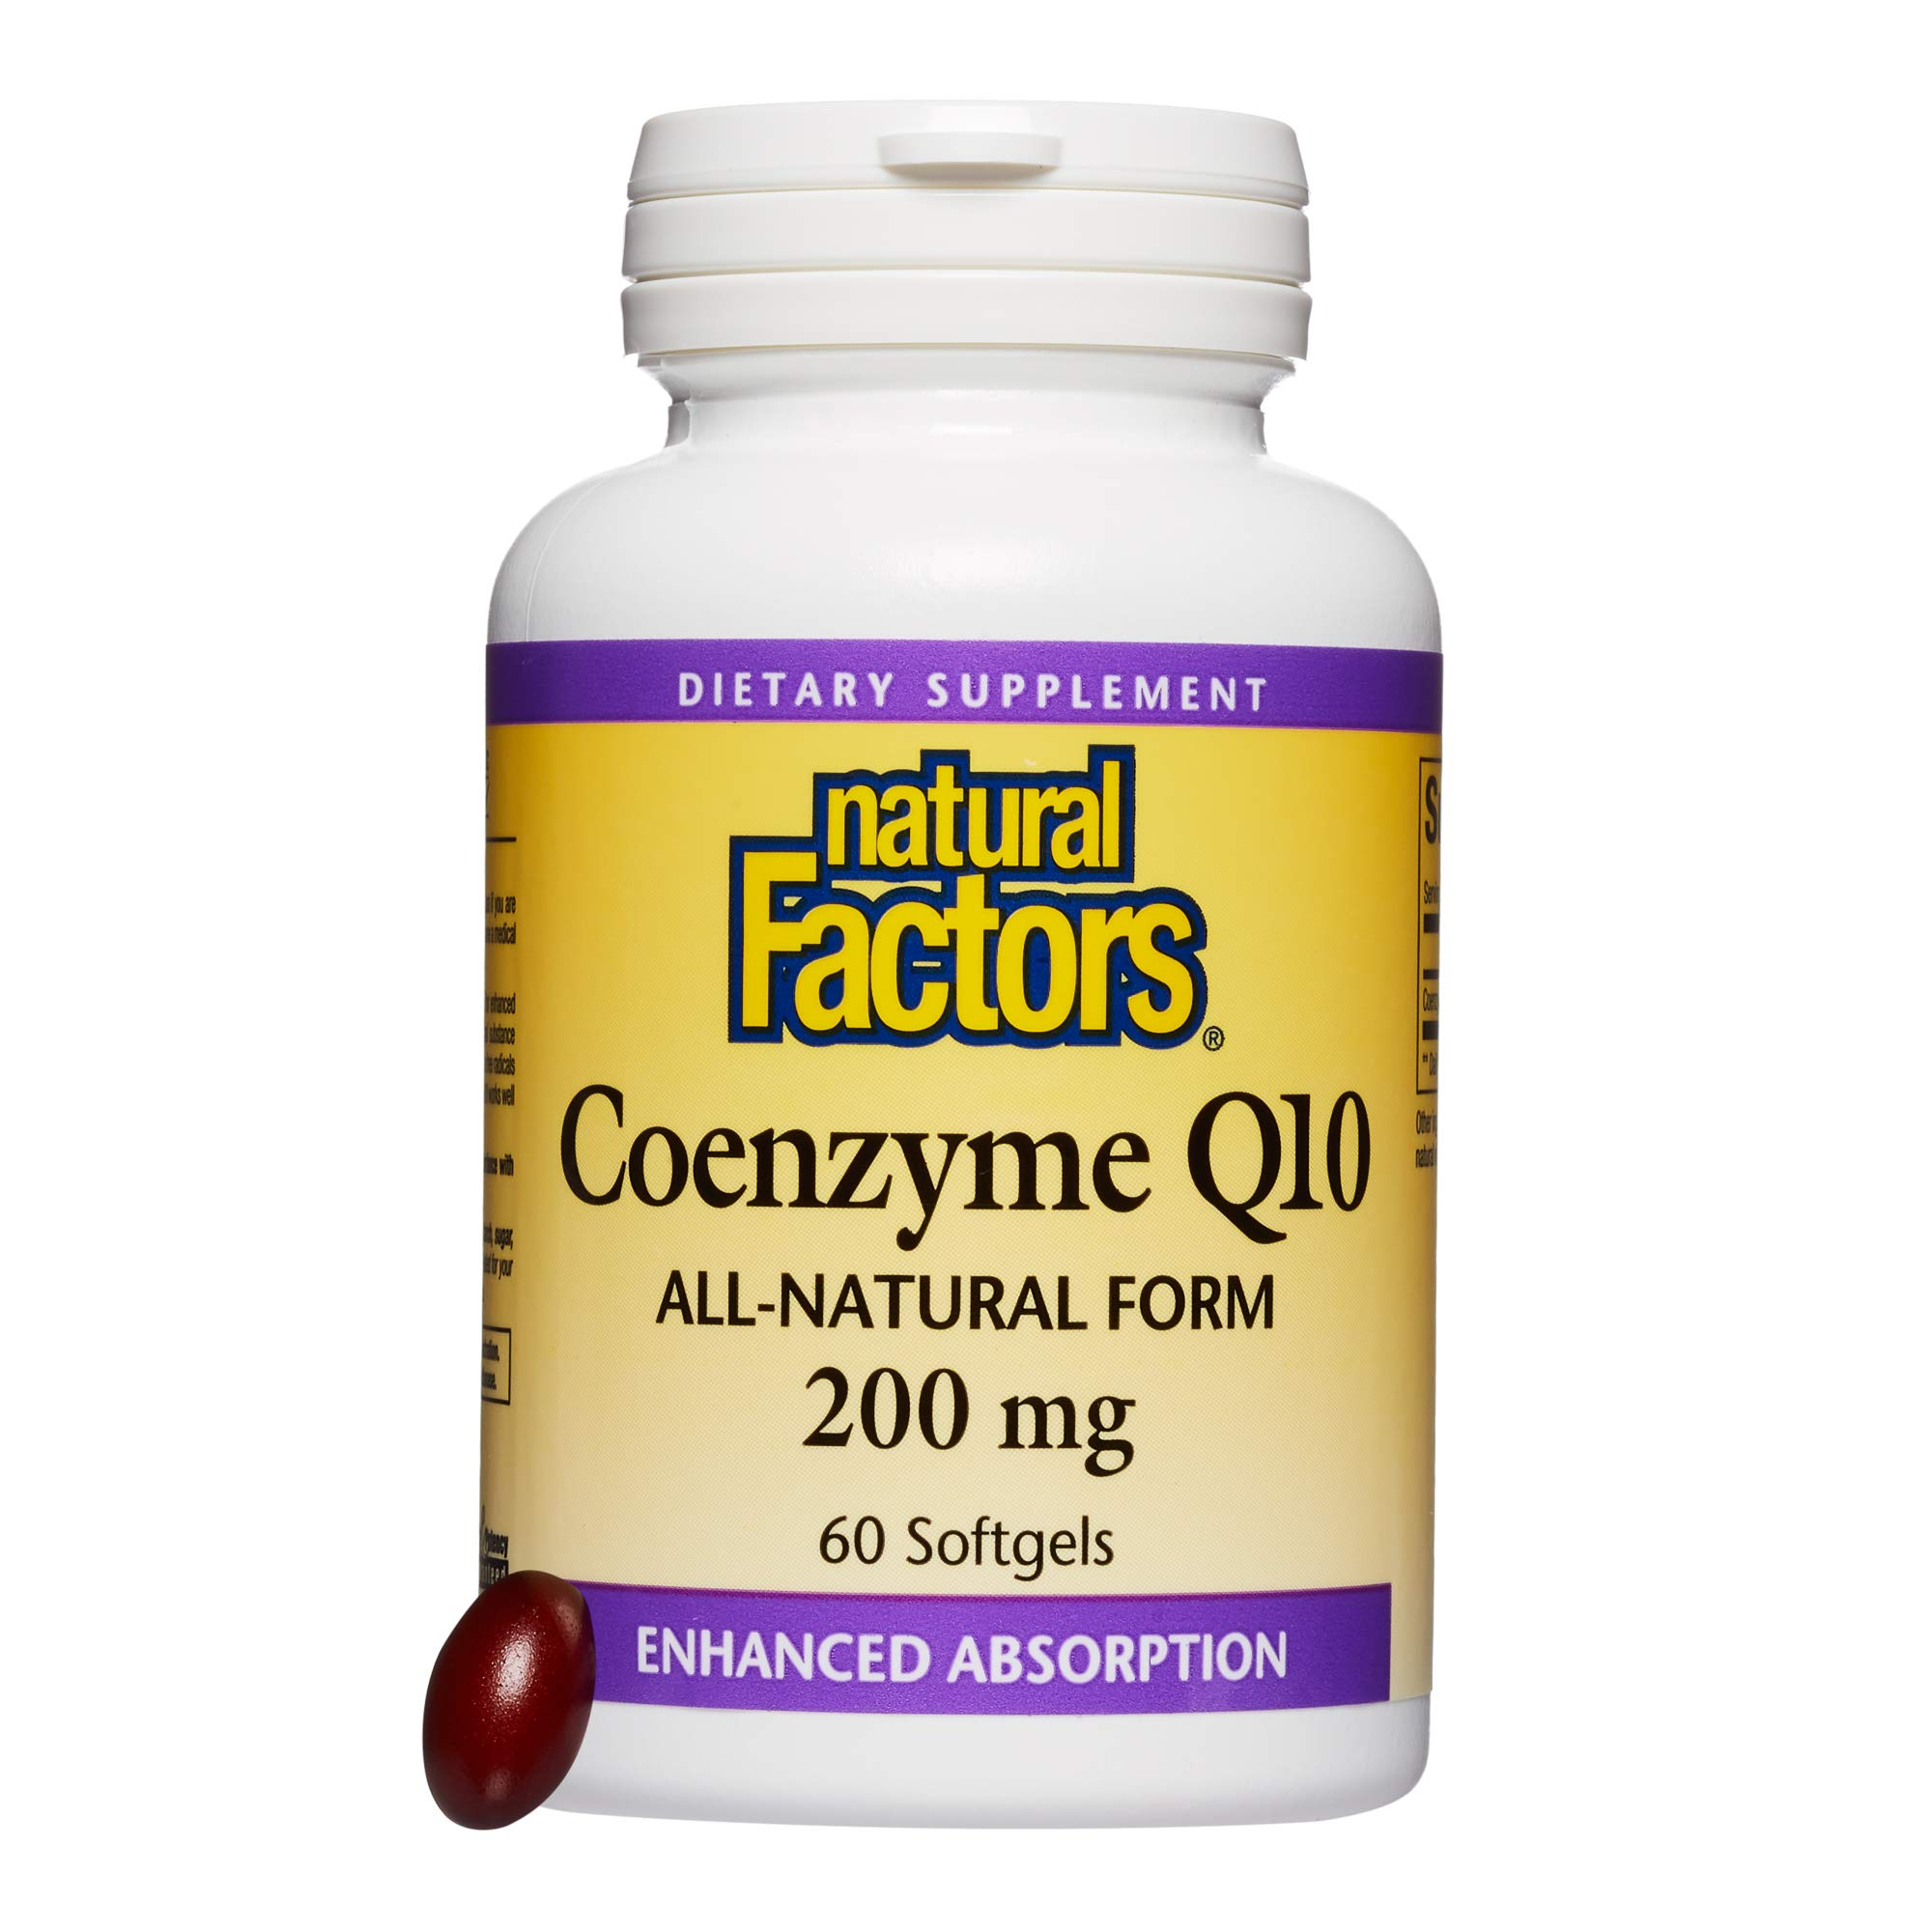 Natural Factors - Coenzyme Q10 200mg, Antioxidant Support to Protect Against Free Radical Damage, while Promoting Cellular Energy Production and Heart Health, 60 Softgels